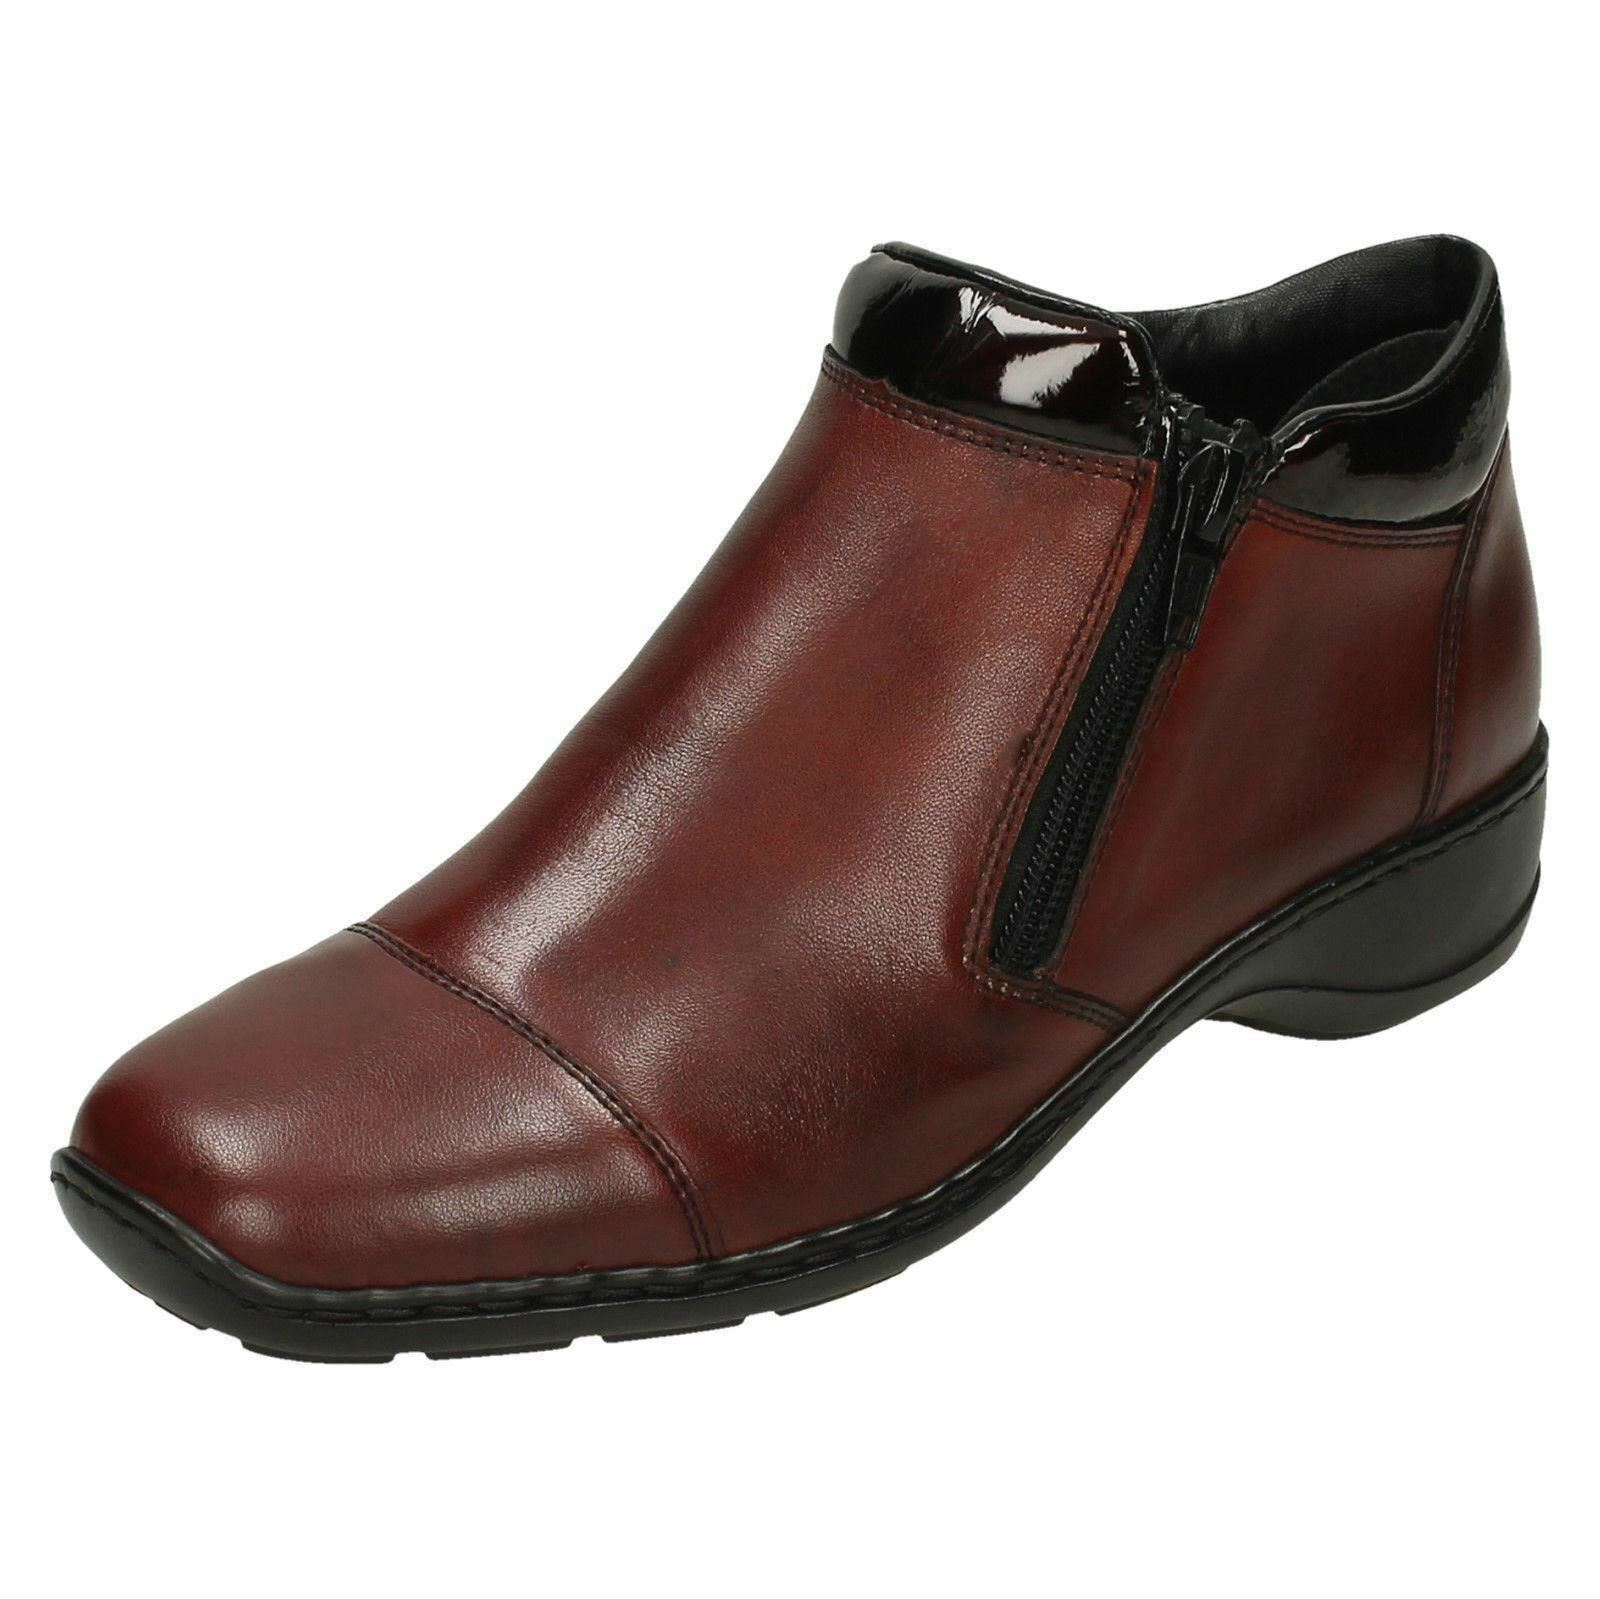 Ladies Rieker 58374 Leather Double Zip Casual Ankle Boots